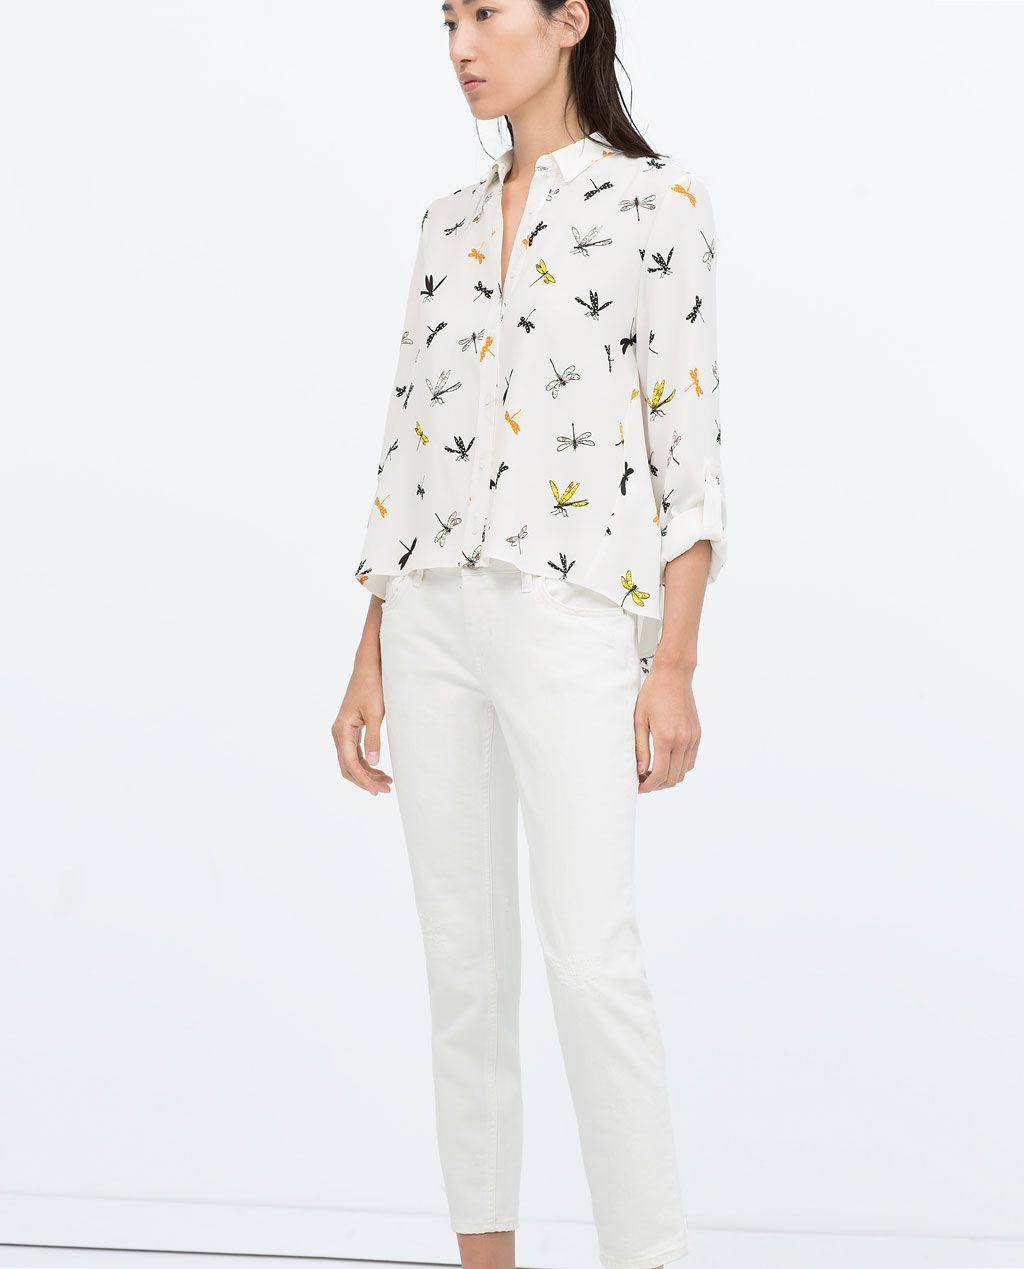 ZARA - COLLECTION SS15 - PRINTED SHIRT WITH TAB SLEEVES